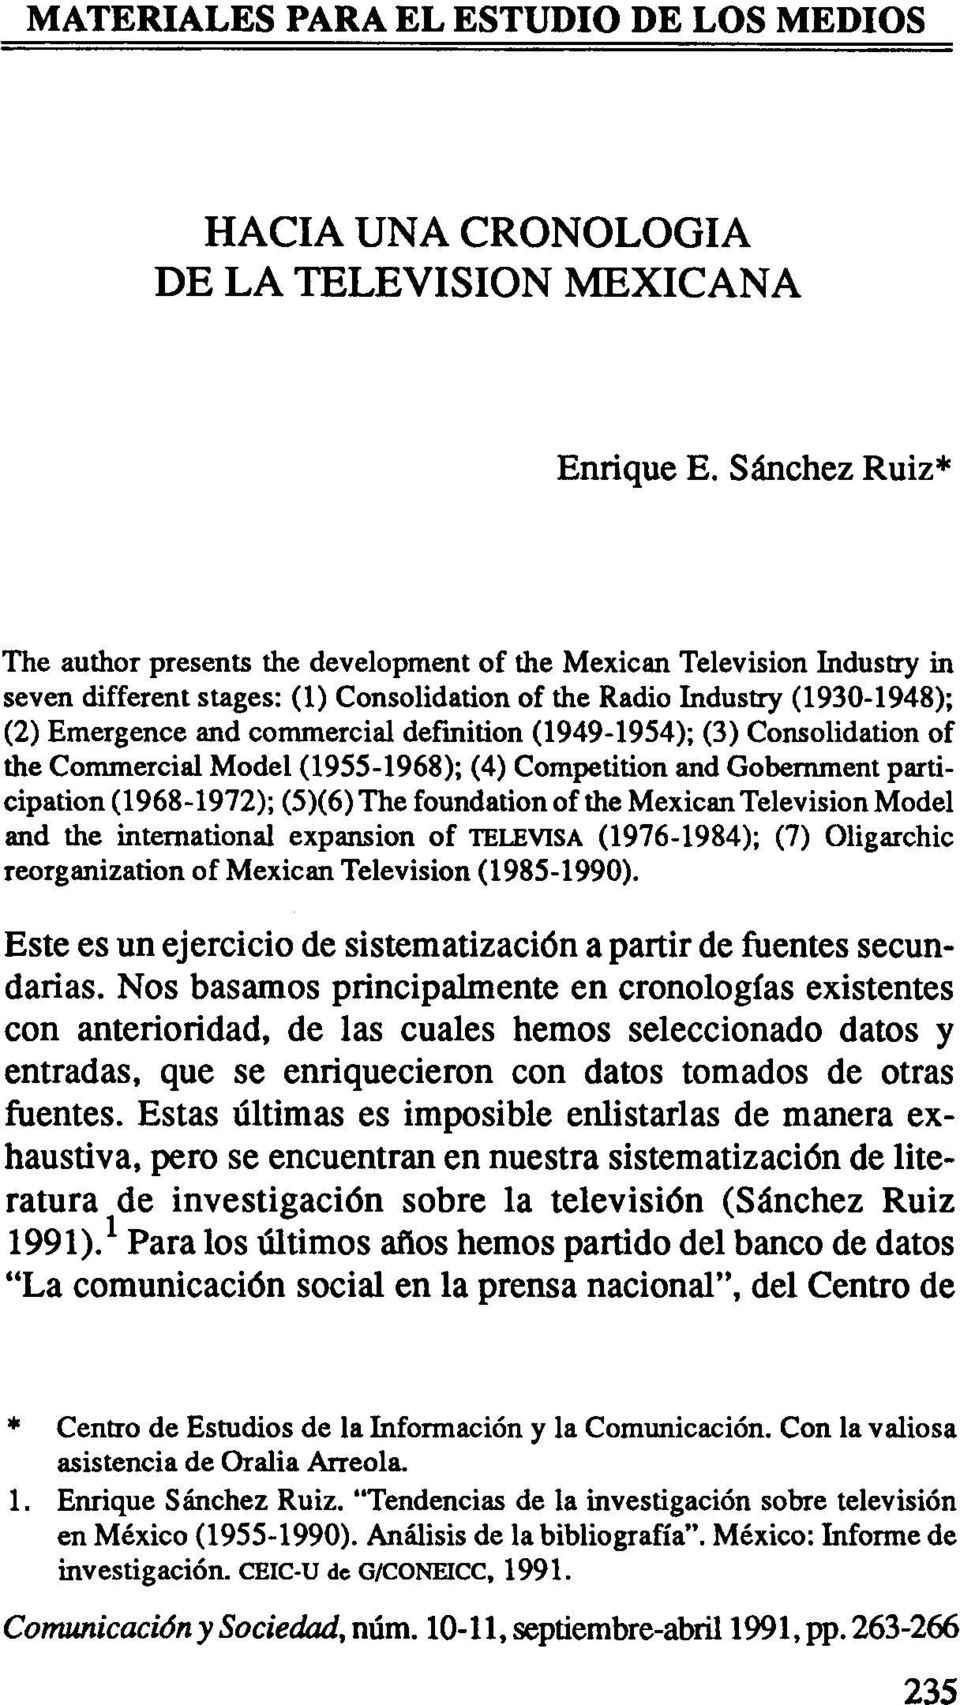 defmition (1949-1954); (3) Consolidation of fue Commercial Model (1955-1968); (4) Competition and Gobernment participation (1968-1972);(5)(6)The foundation afilie Mexican TelevisionModel and fue